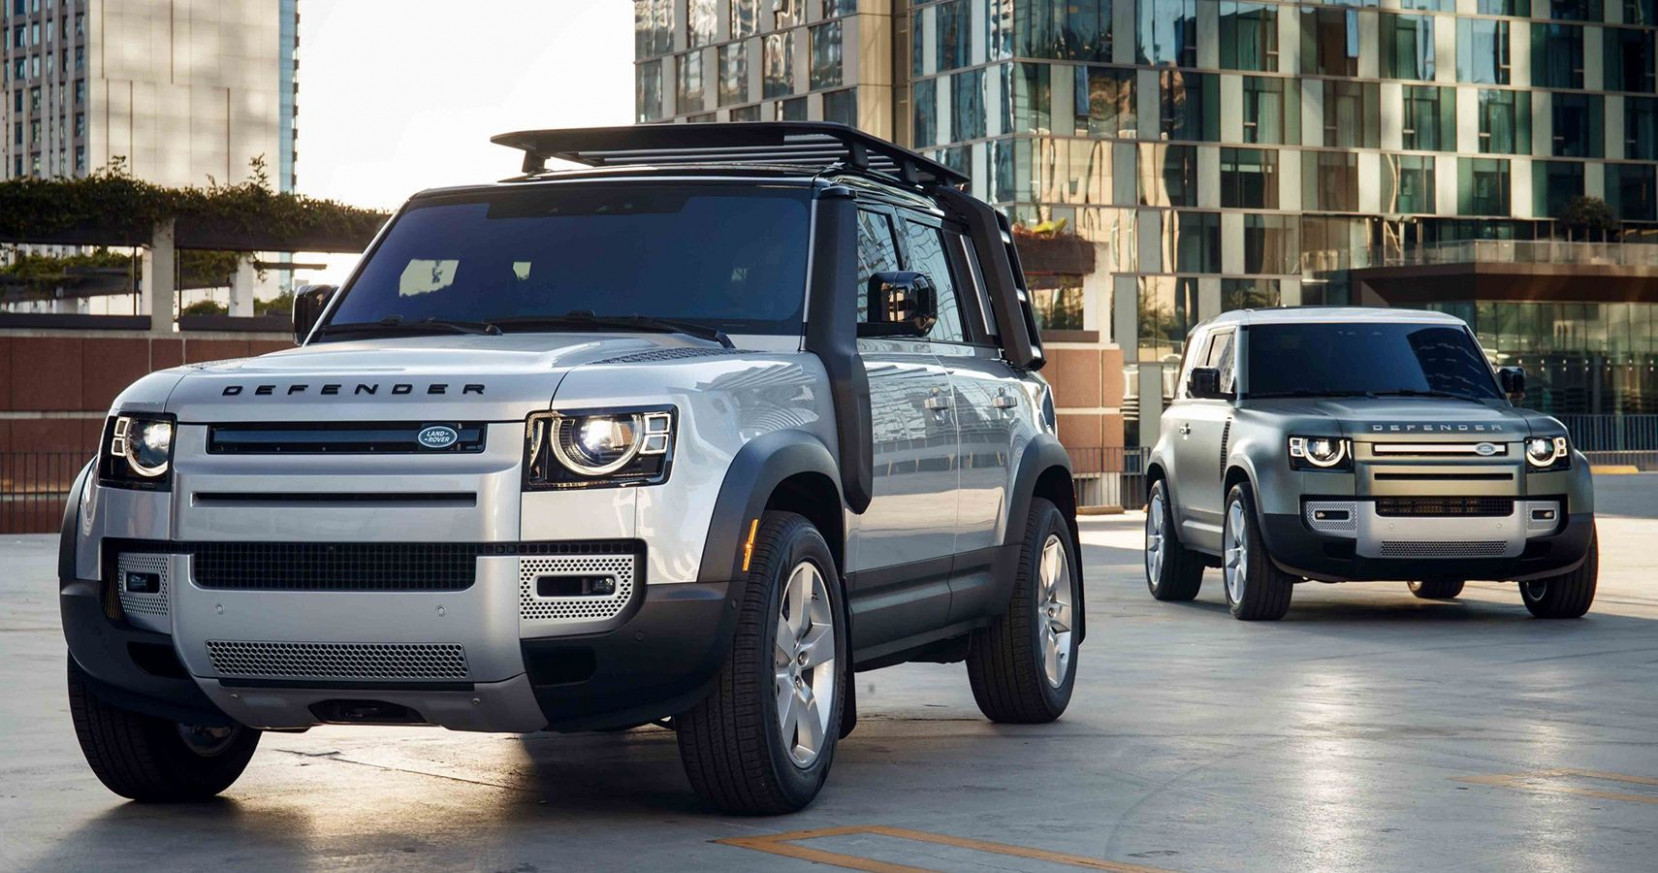 Picture 2022 Land Rover Defender